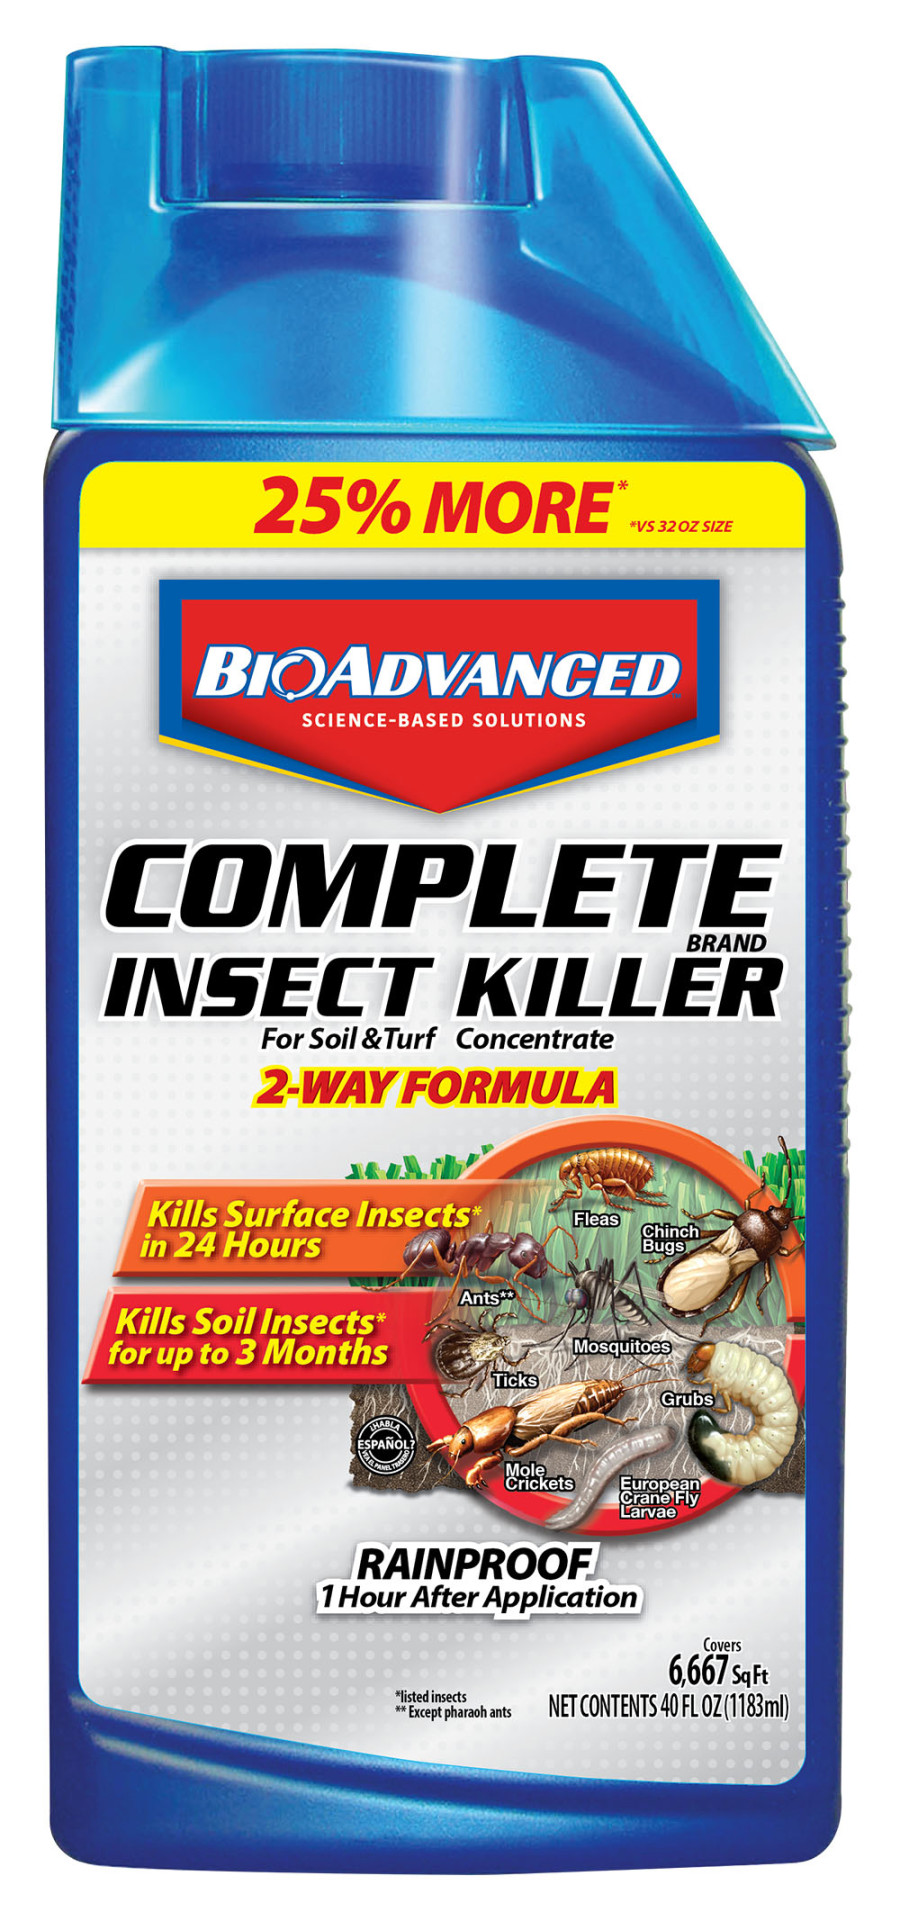 BioAdvanced Complete Insect Killer for Soil & Turf 8ea/40 oz